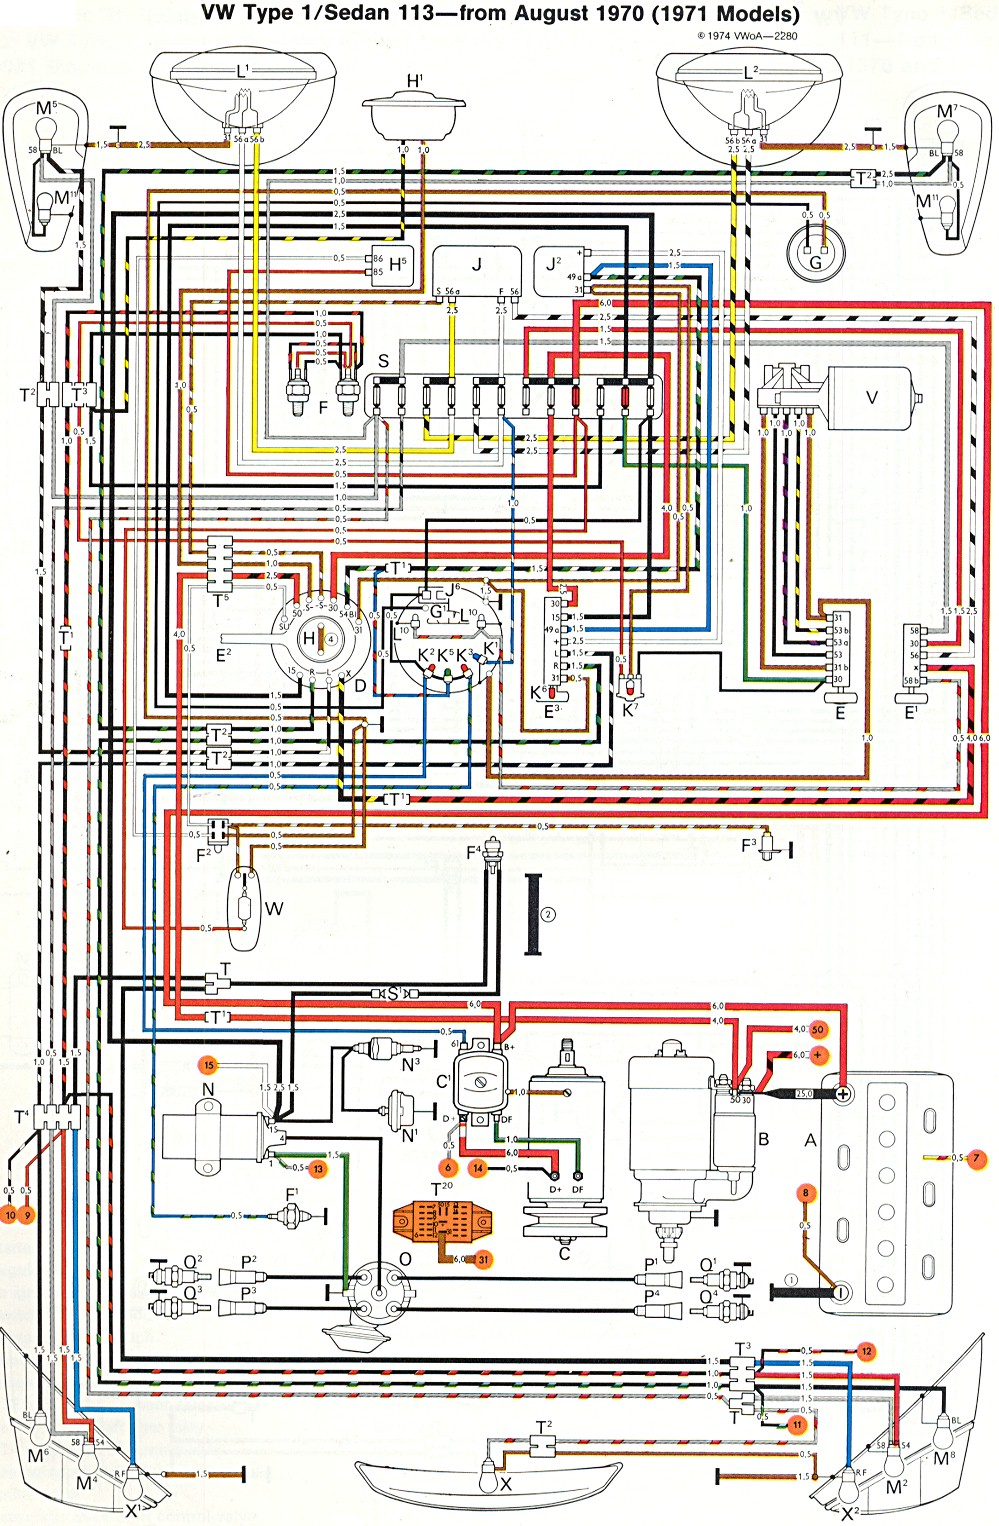 bug_super_71 1971 super beetle wiring diagram thegoldenbug com 1970 vw bug wiring diagram at eliteediting.co